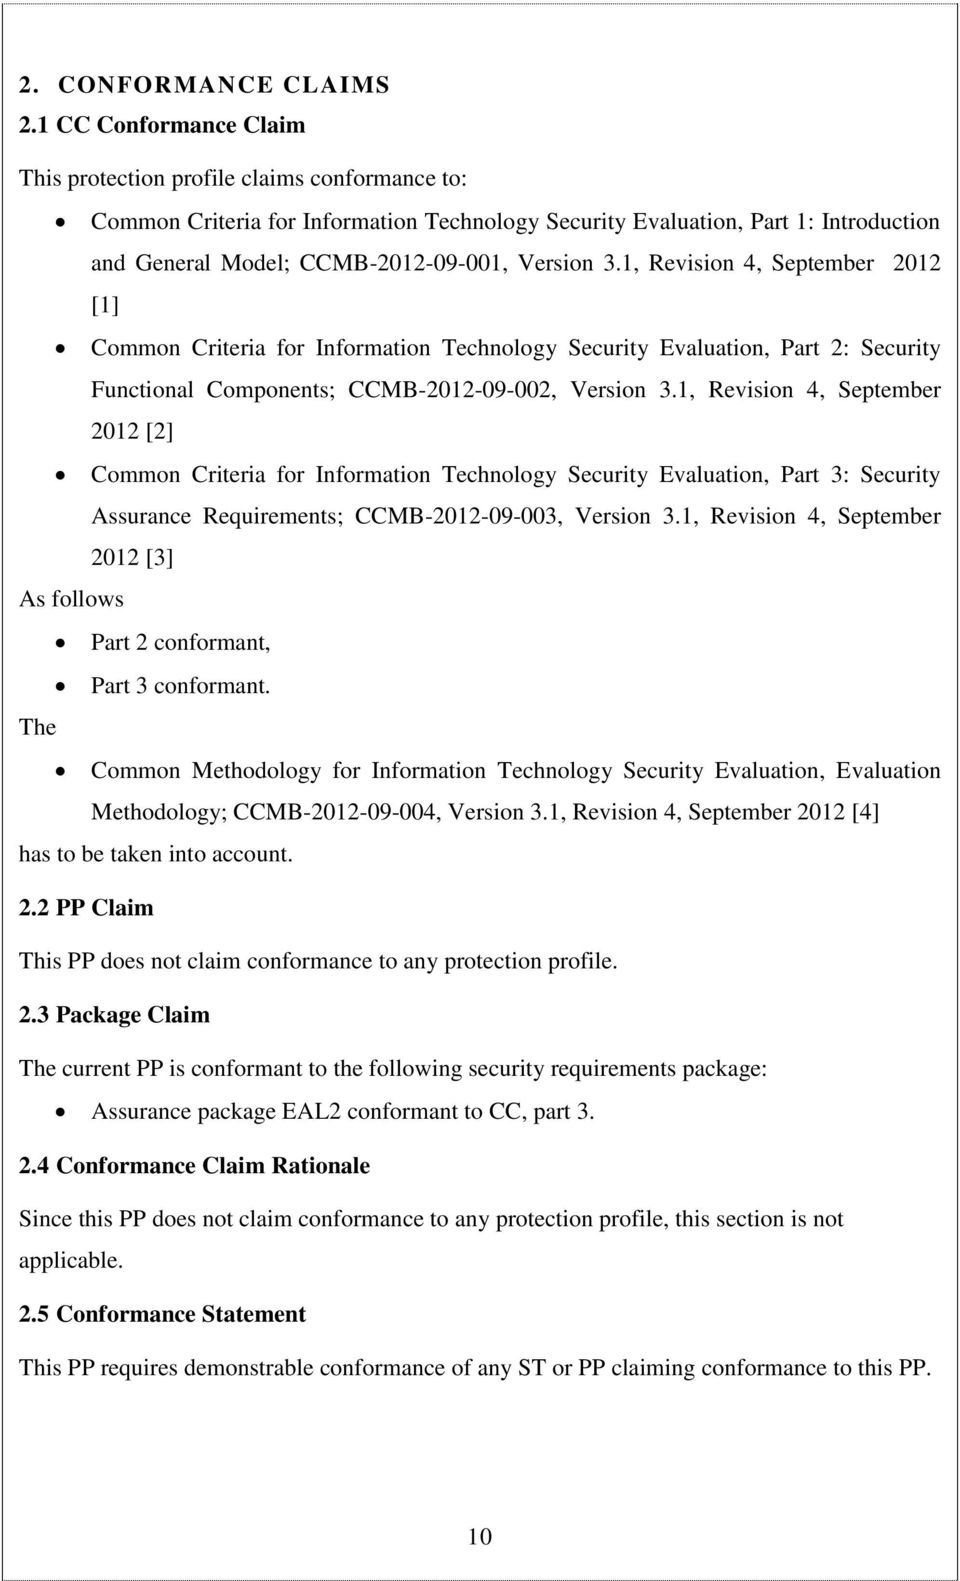 3.1, Revision 4, September 2012 [1] Common Criteria for Information Technology Security Evaluation, Part 2: Security Functional Components; CCMB-2012-09-002, Version 3.